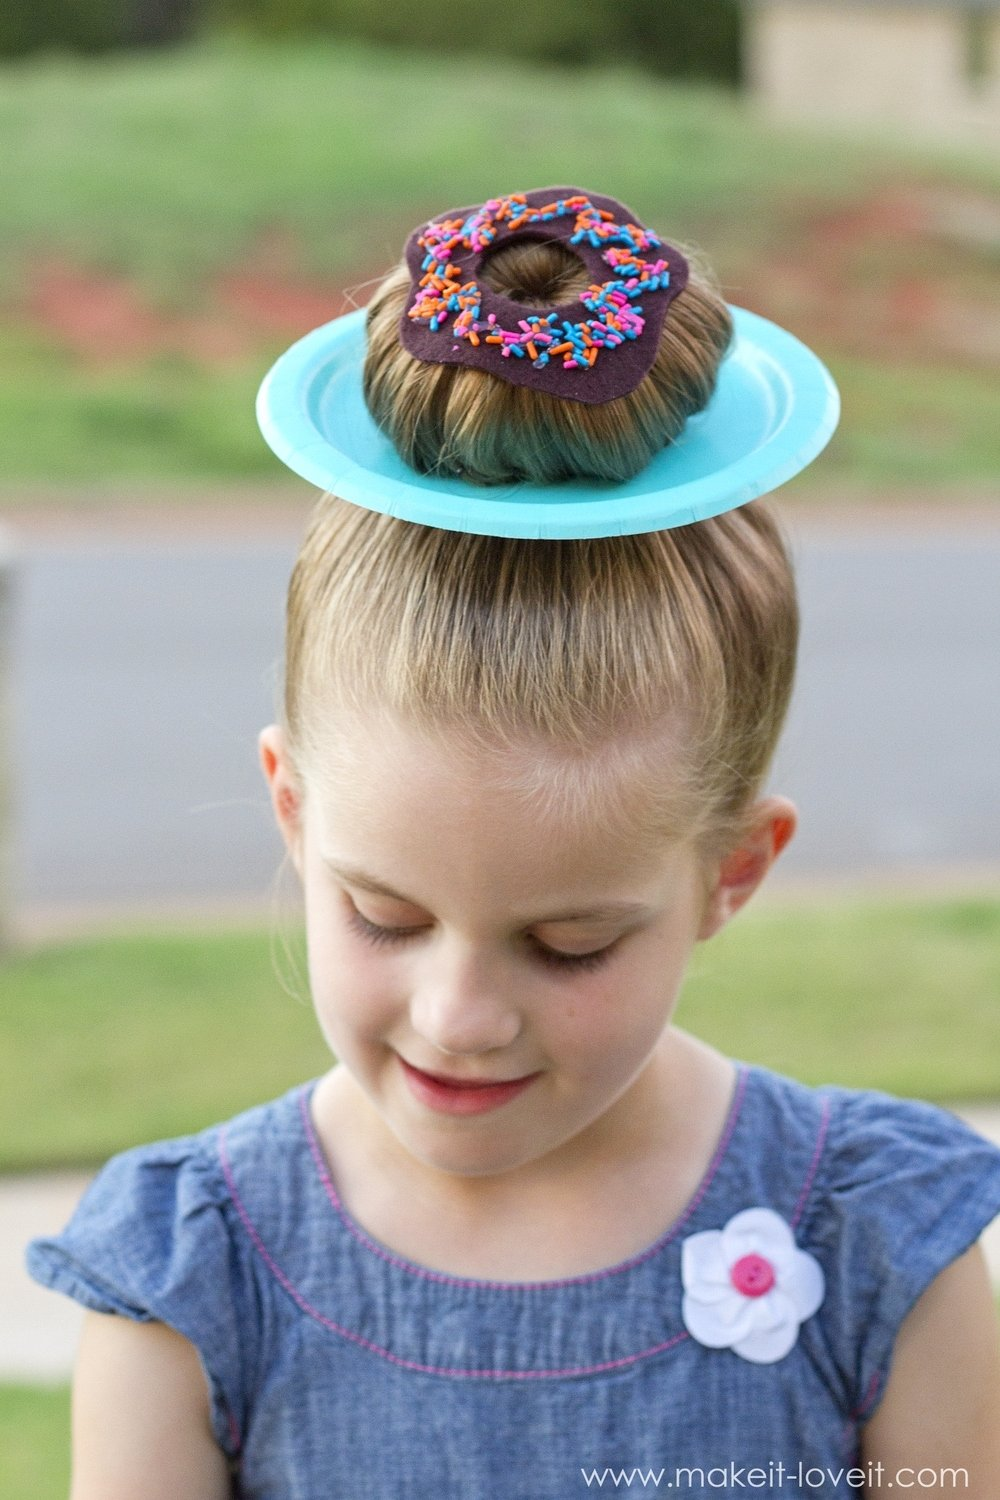 10 Perfect Easy Crazy Hair Day Ideas 25 clever ideas for wacky hair day at school including 15 2020